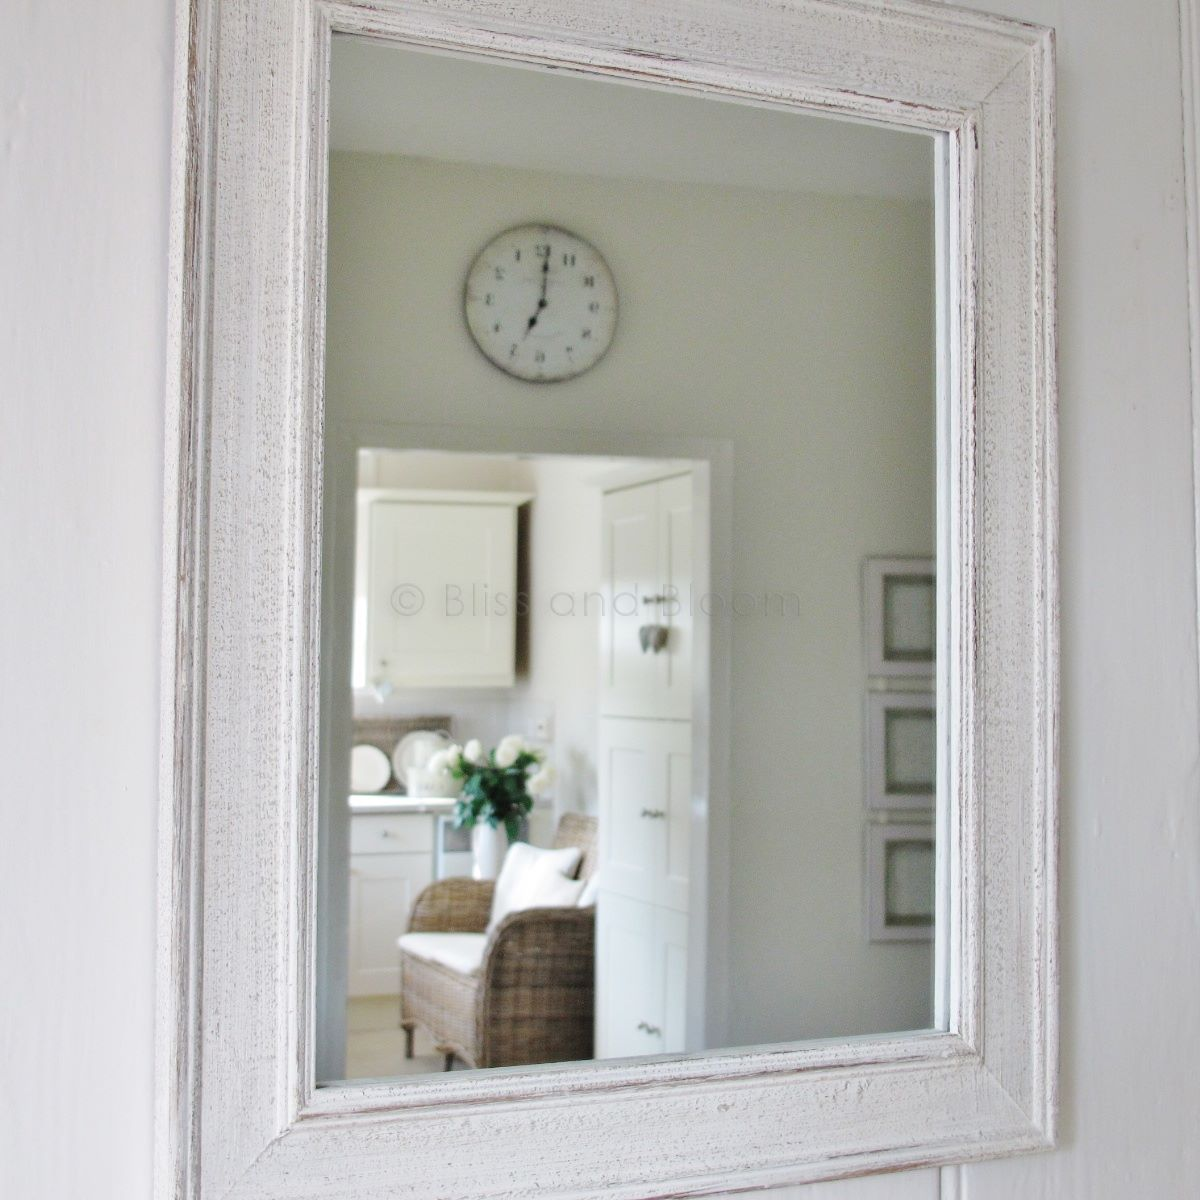 Antique white mirror beautiful white distressed and aged frame with